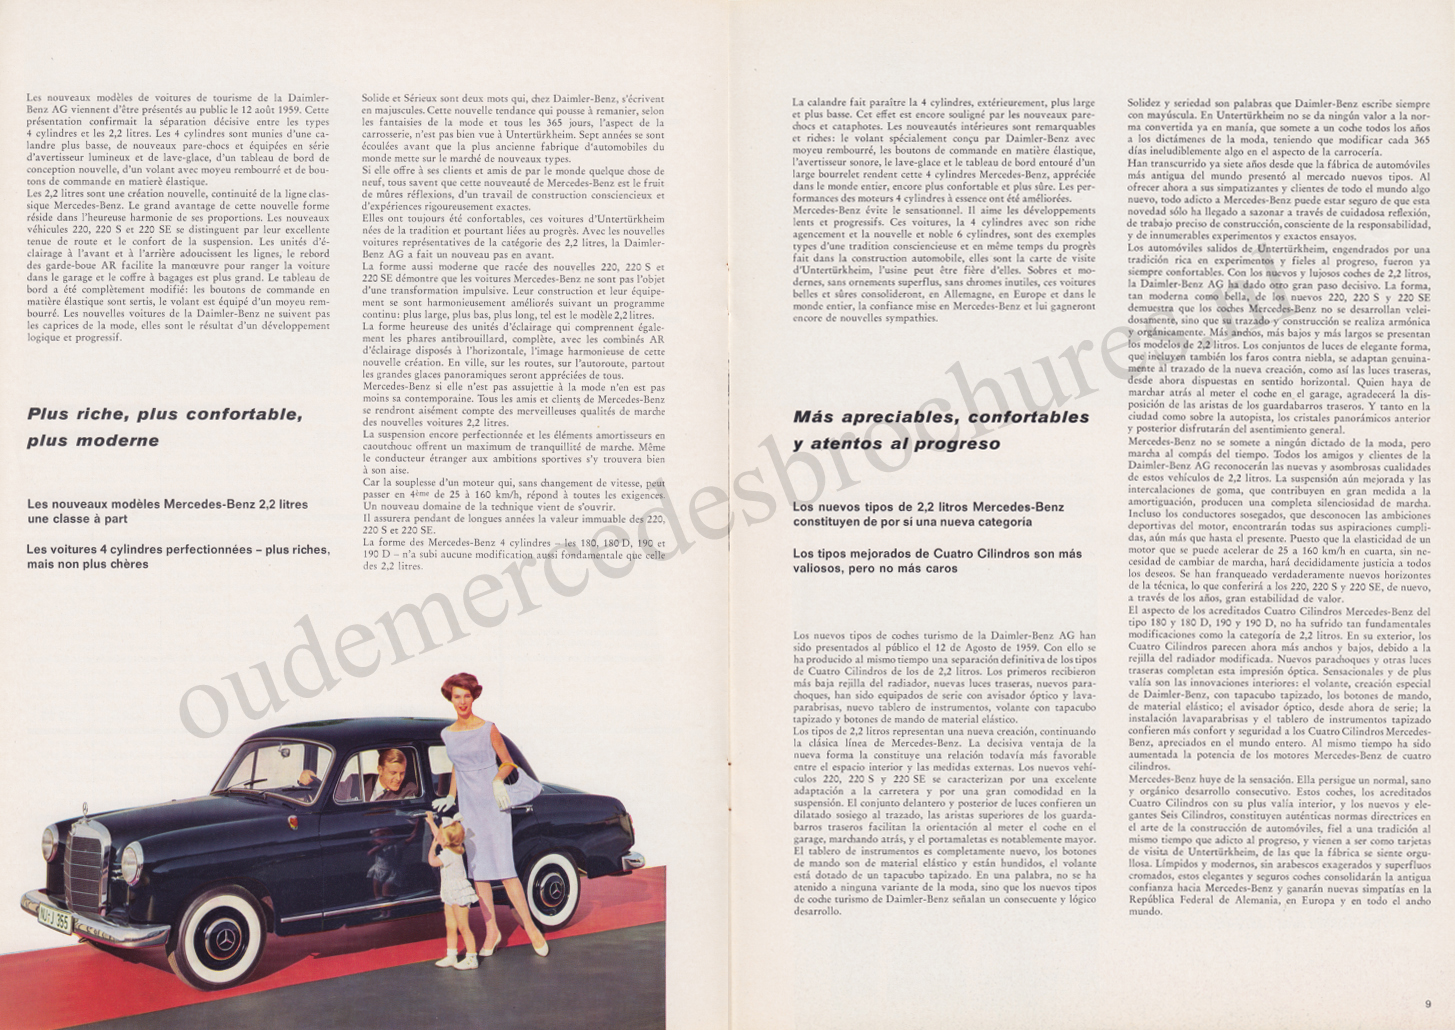 (REVISTA): Periódico In aller welt n.º 34 - Mercedes-Benz no mundo - 1959 - multilingue 005